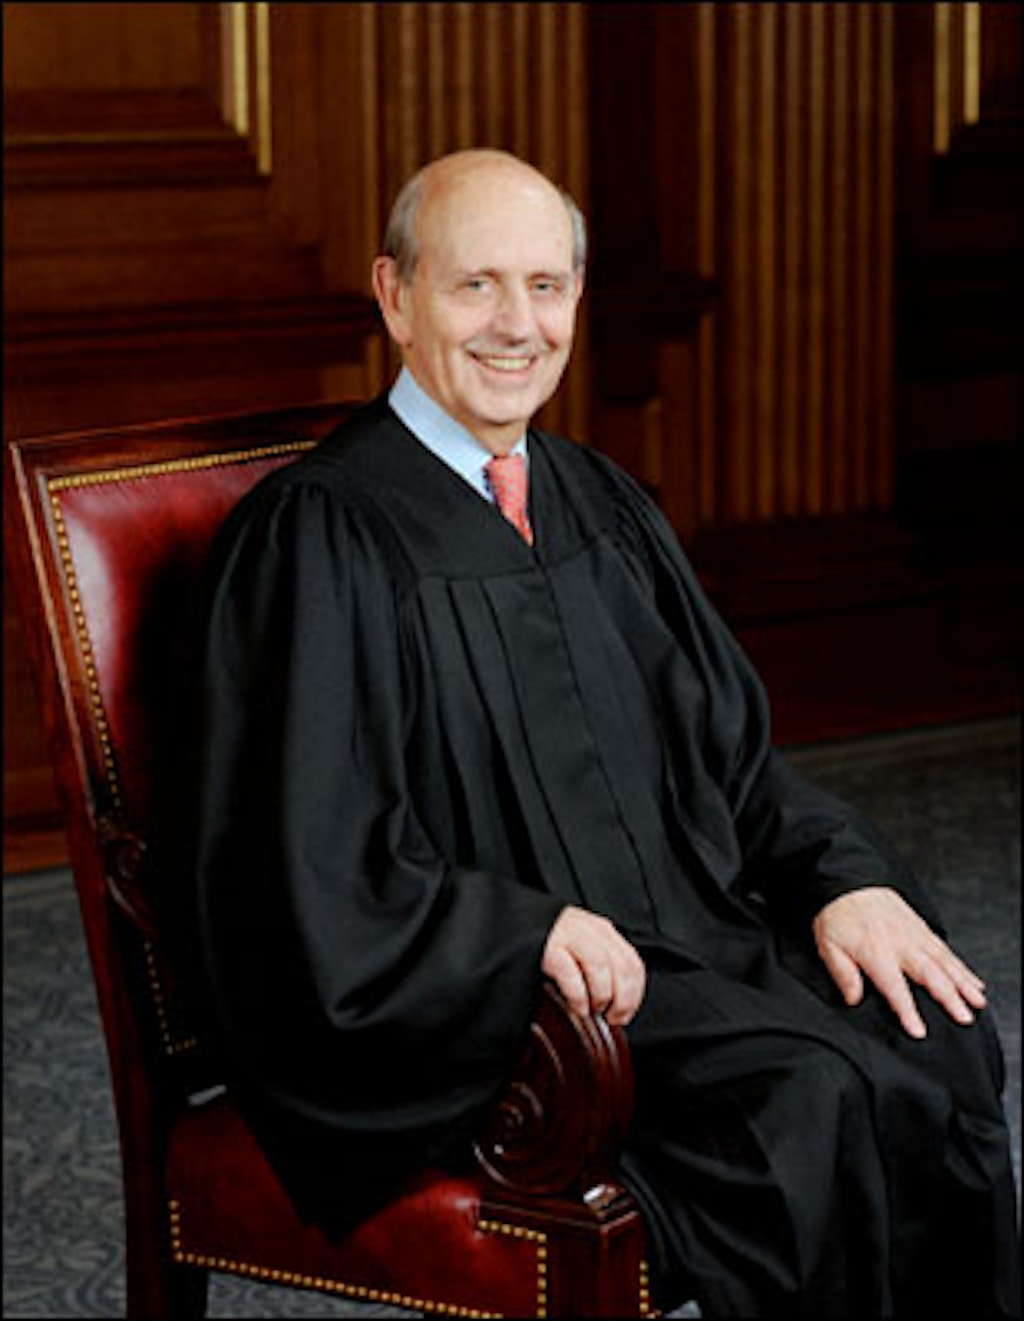 As Supreme Court Rejects Death Penalty Petitions, Justice Breyer Renews Call For Constitutional Review